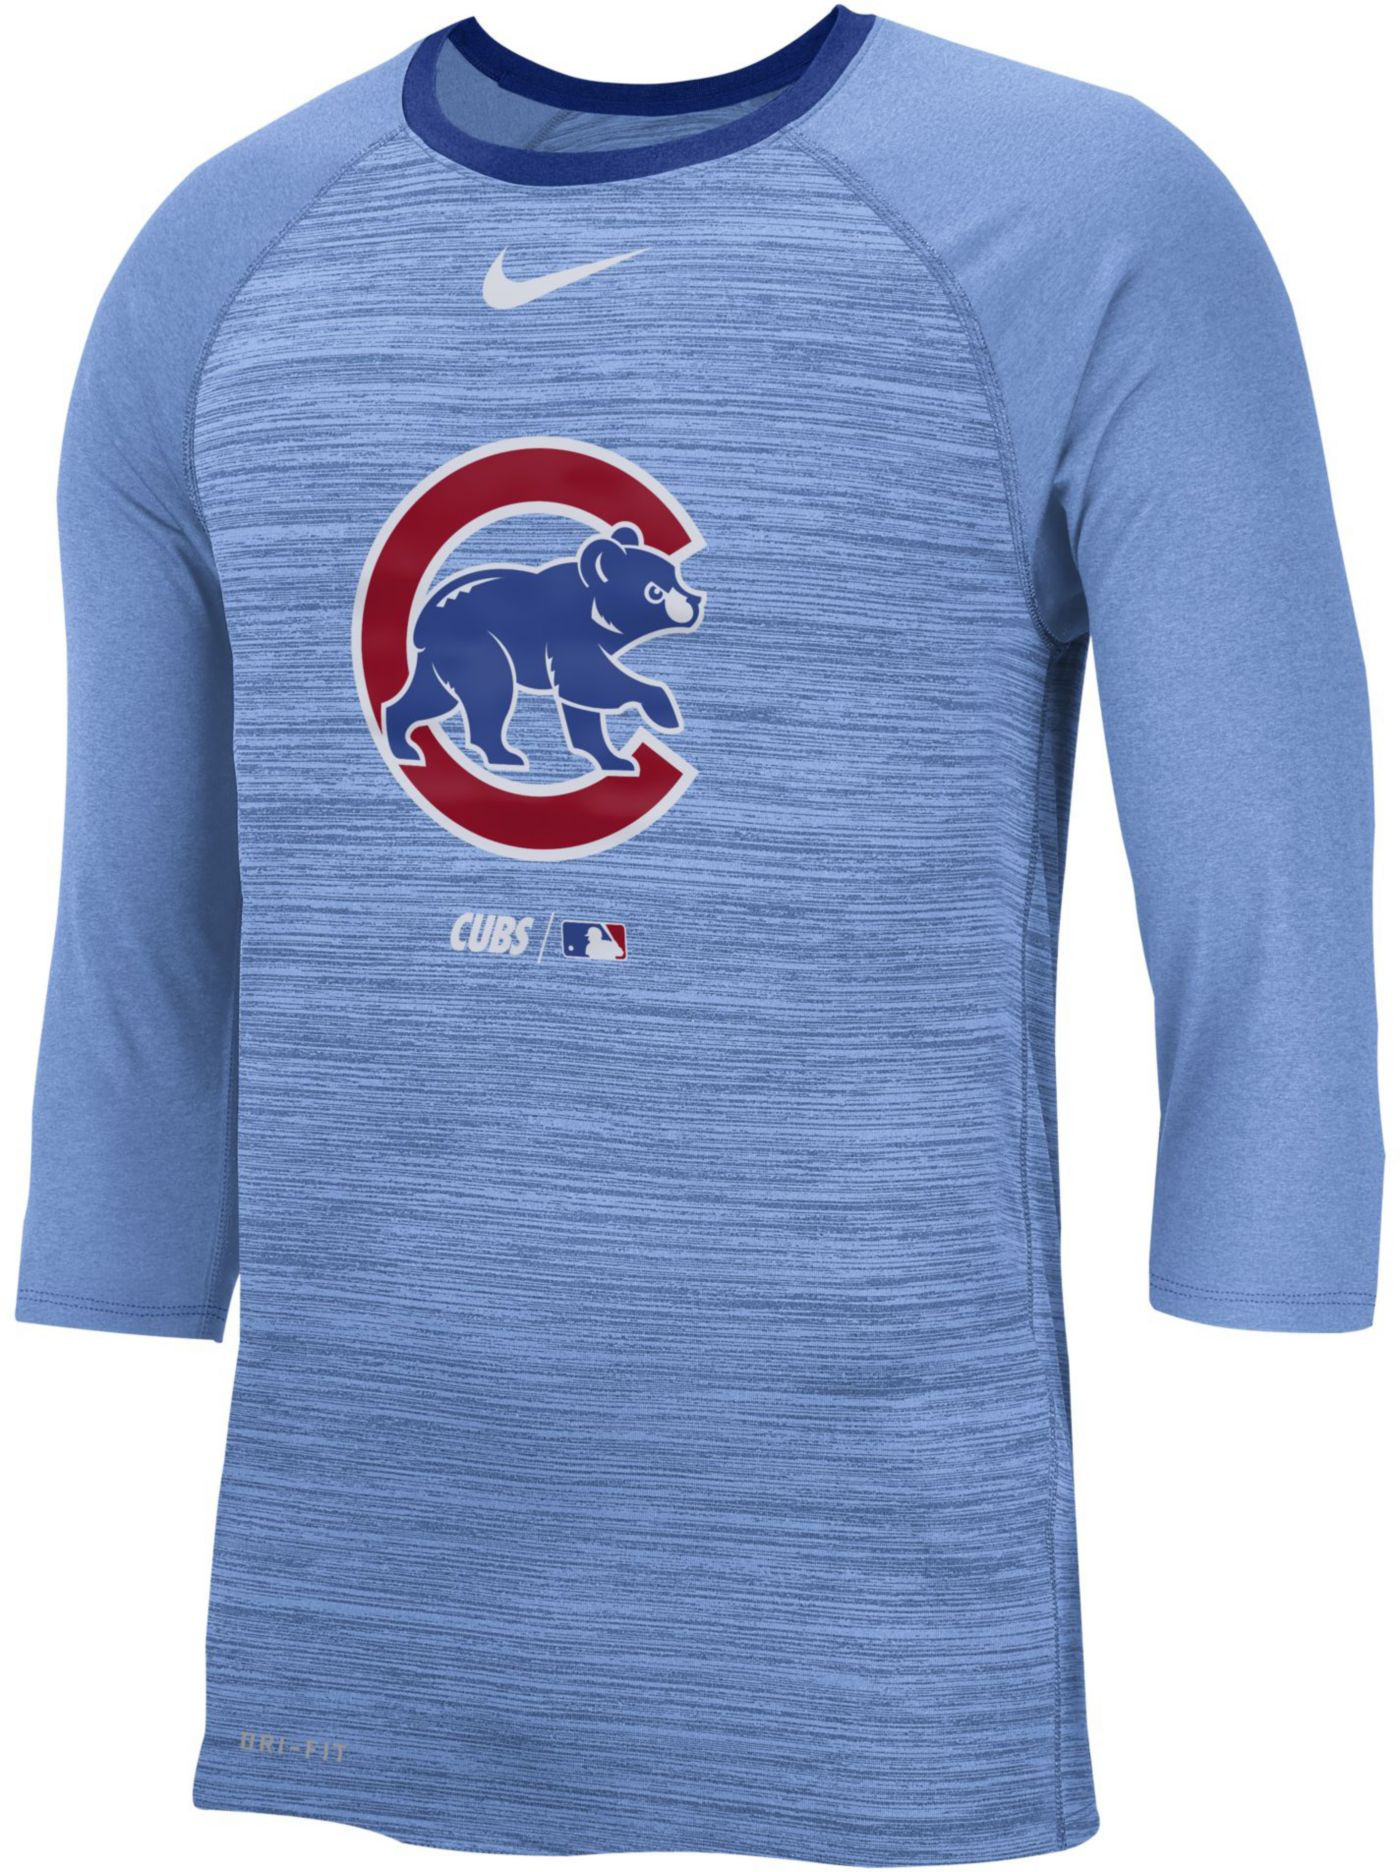 Nike Men's Chicago Cubs Dri-FIT Authentic Collection Legend Three-Quarter Sleeve Shirt